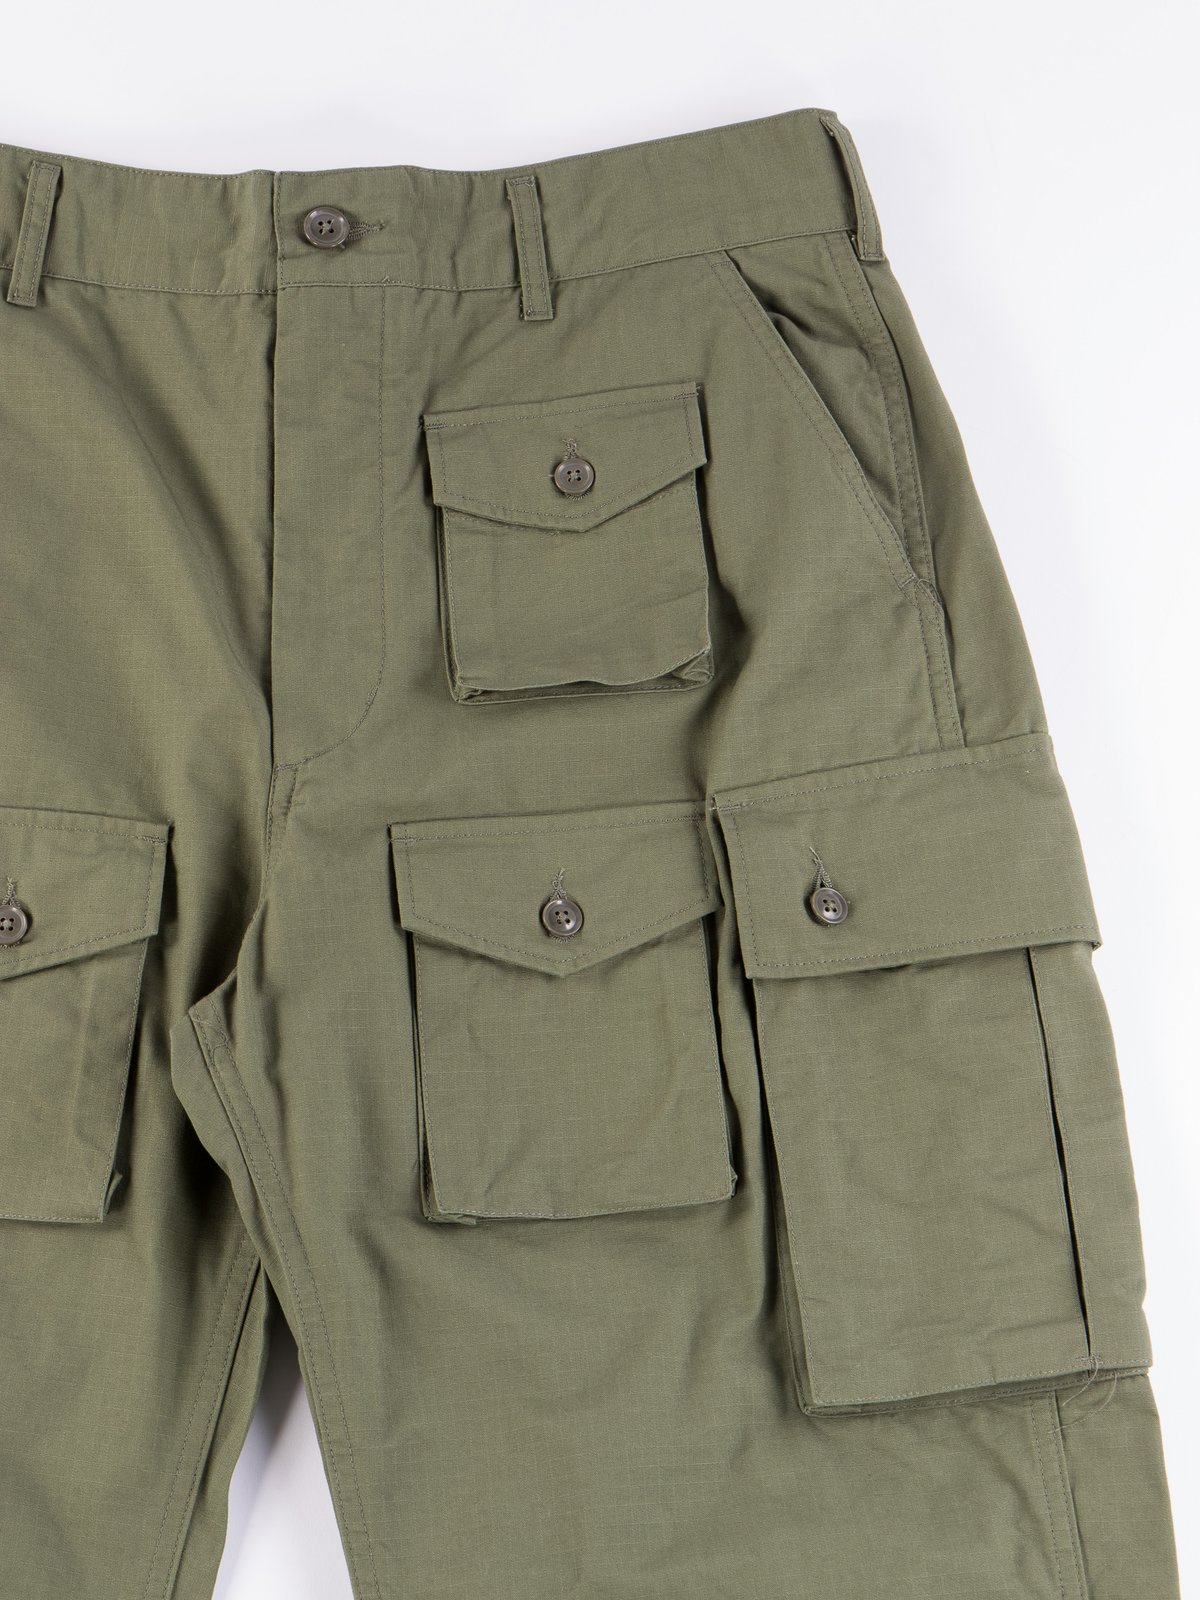 Olive Cotton Ripstop FA Pant - Image 3